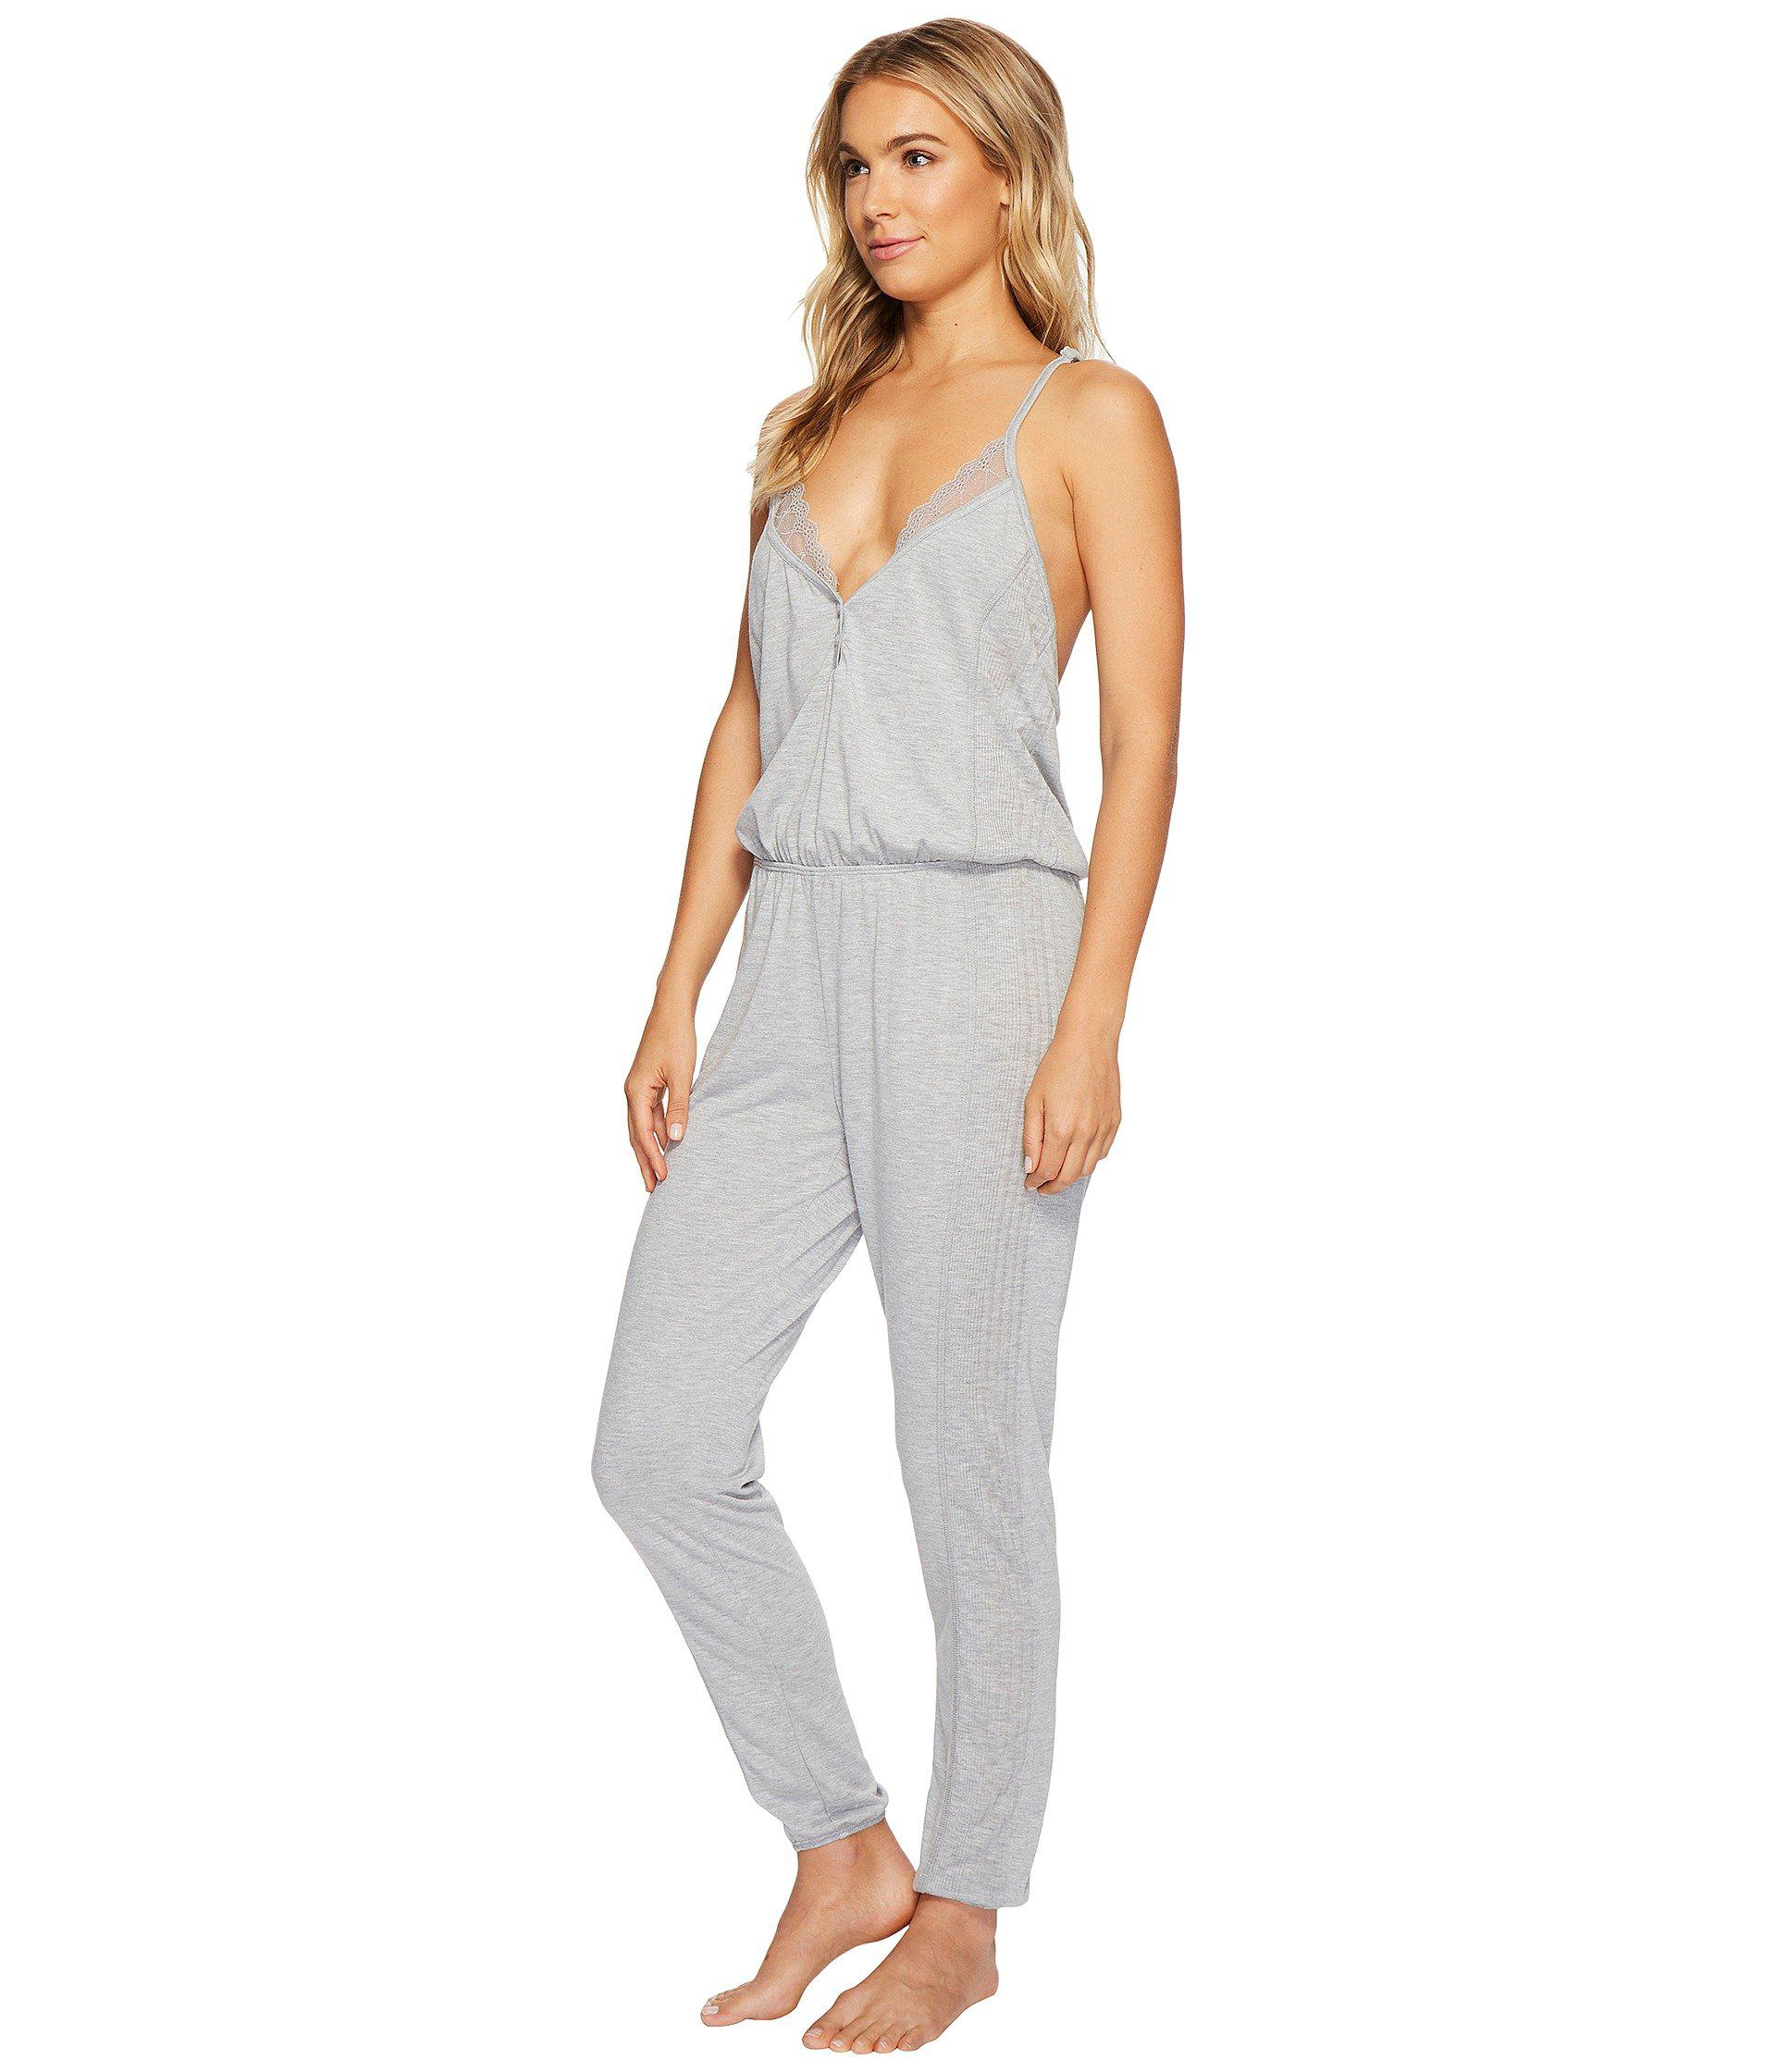 283e21bd43de Lyst - Splendid Always Long Lace Back Pajama Romper (black) Women s Jumpsuit    Rompers One Piece in Gray - Save 13%